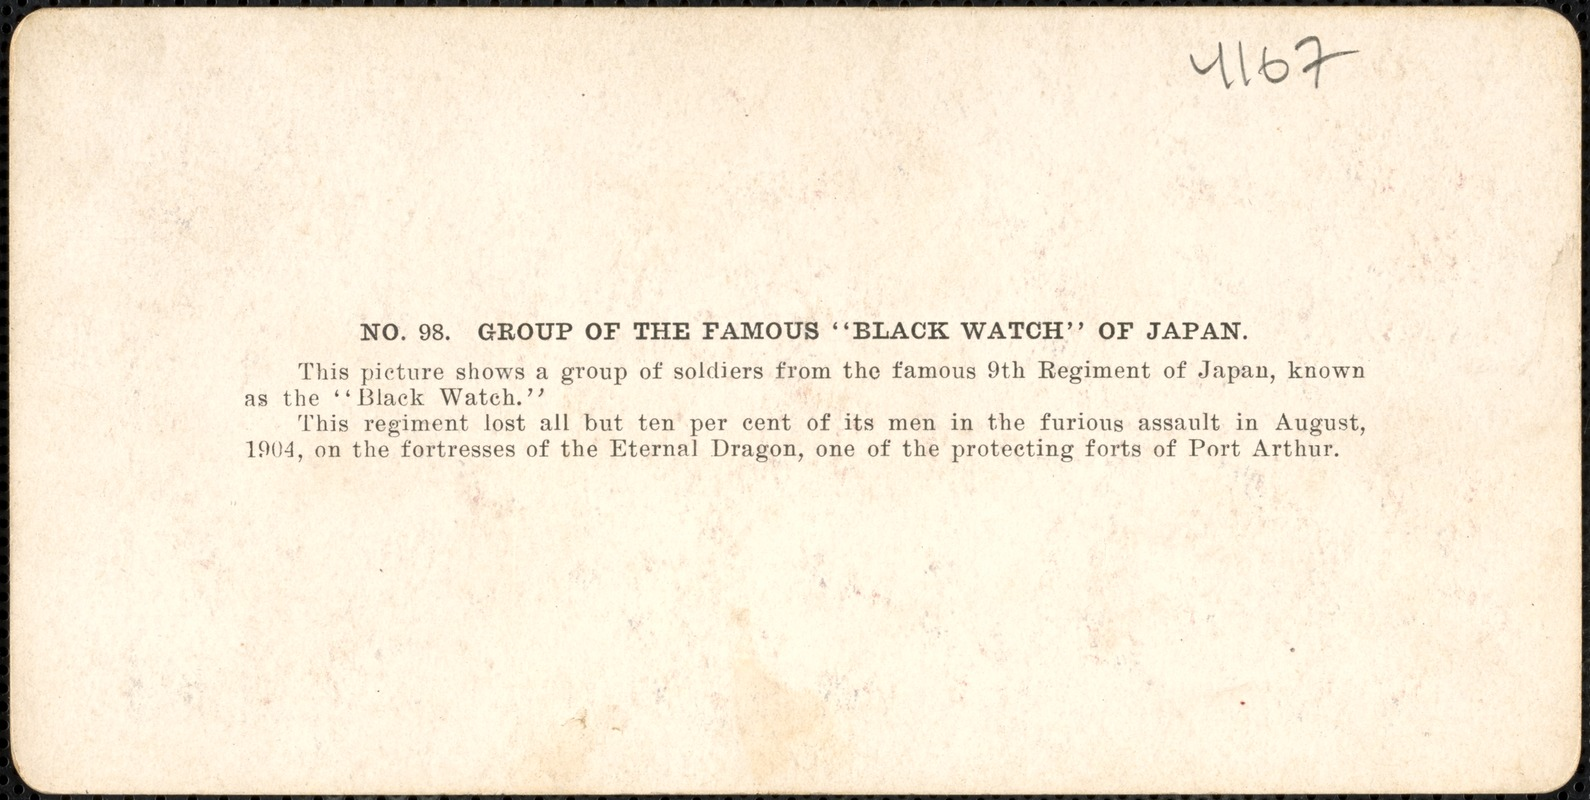 """Group of the famous """"Black Watch"""" of Japan"""